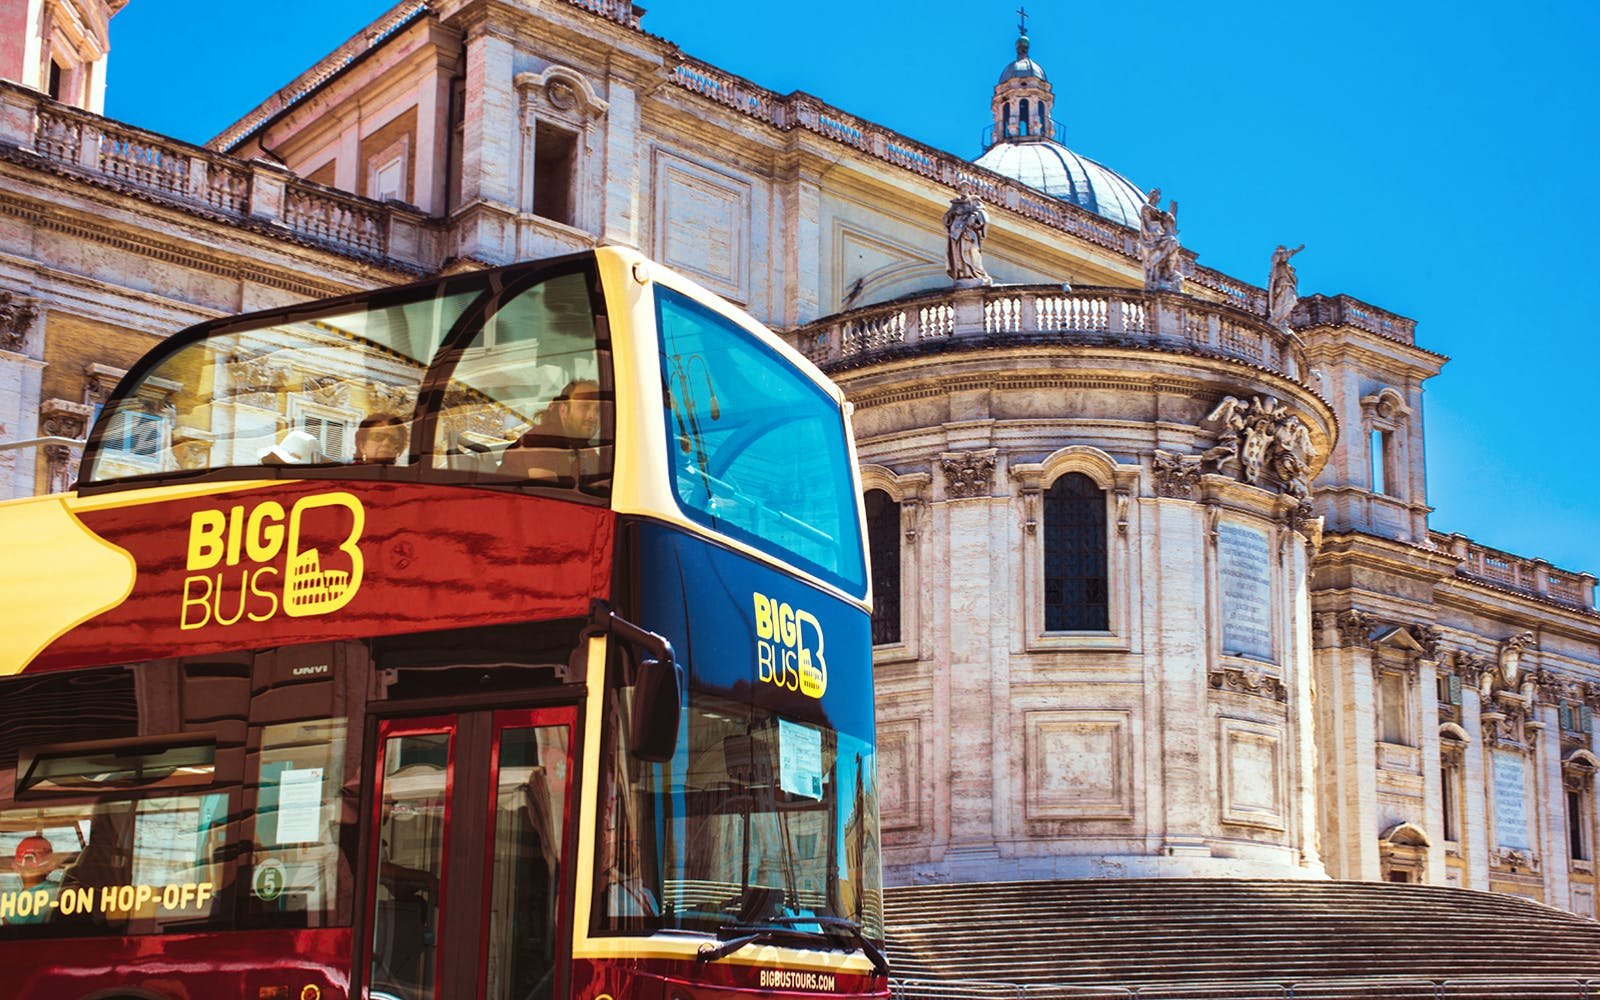 Big Bus Rome 1 day hop on hop off